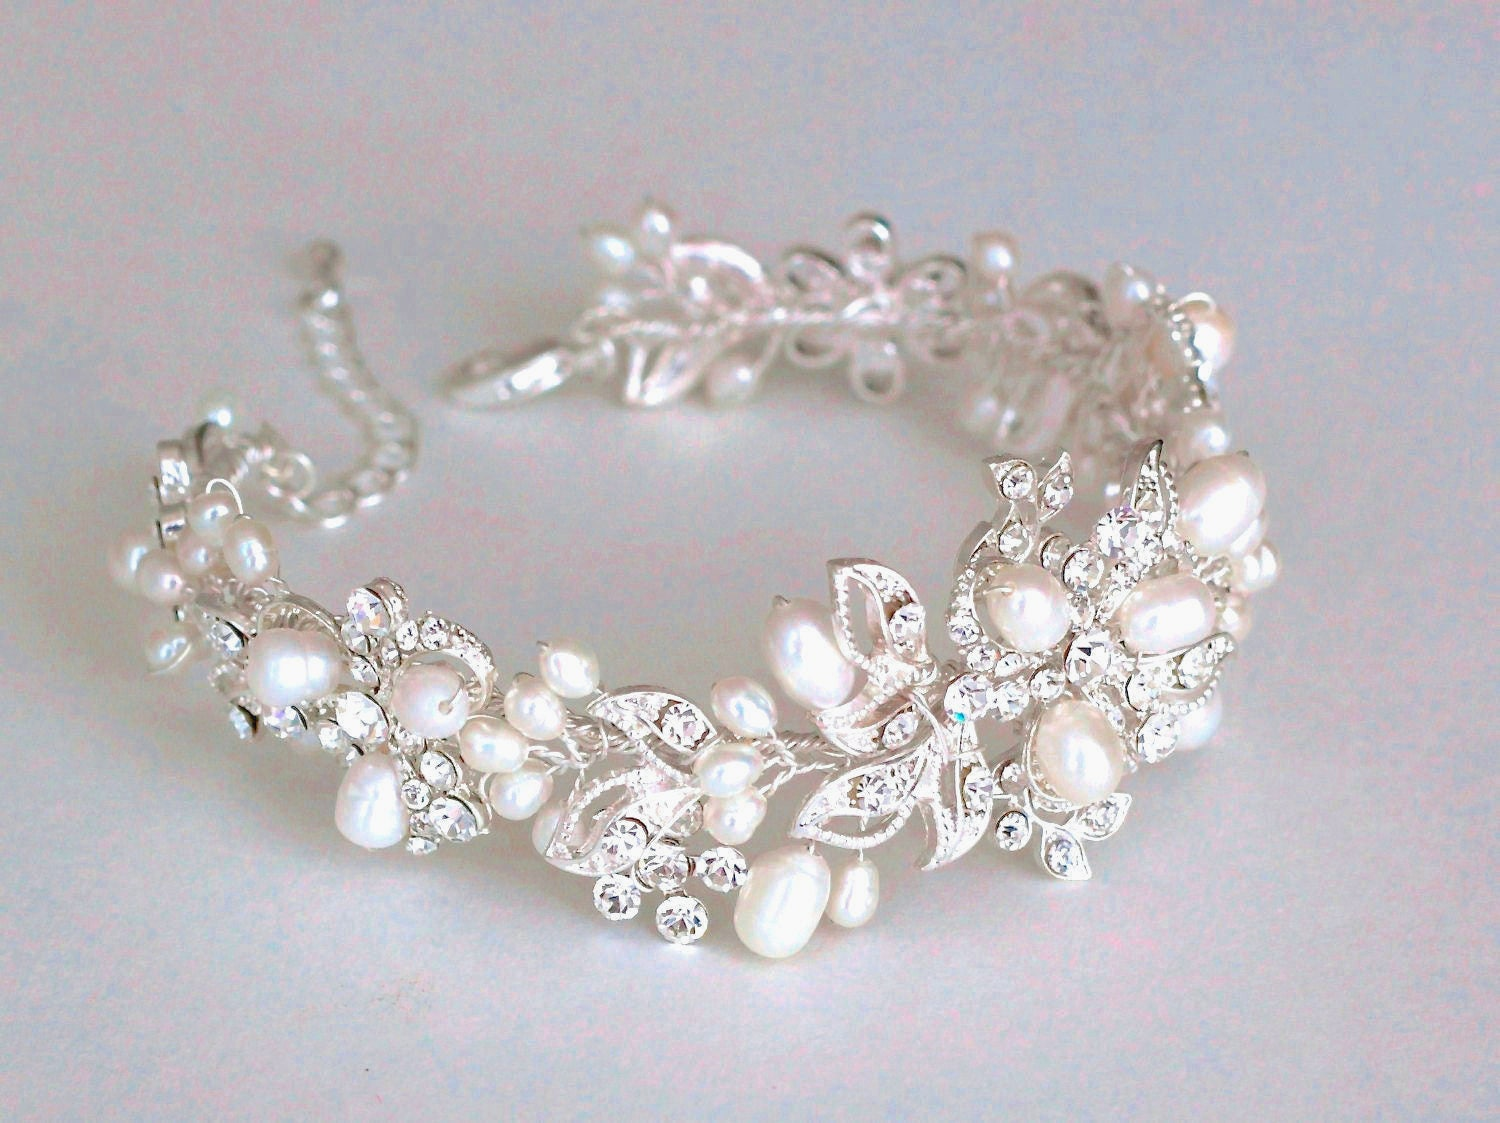 Bridal Bracelet. Bridal Accessories. Wedding Bracelet